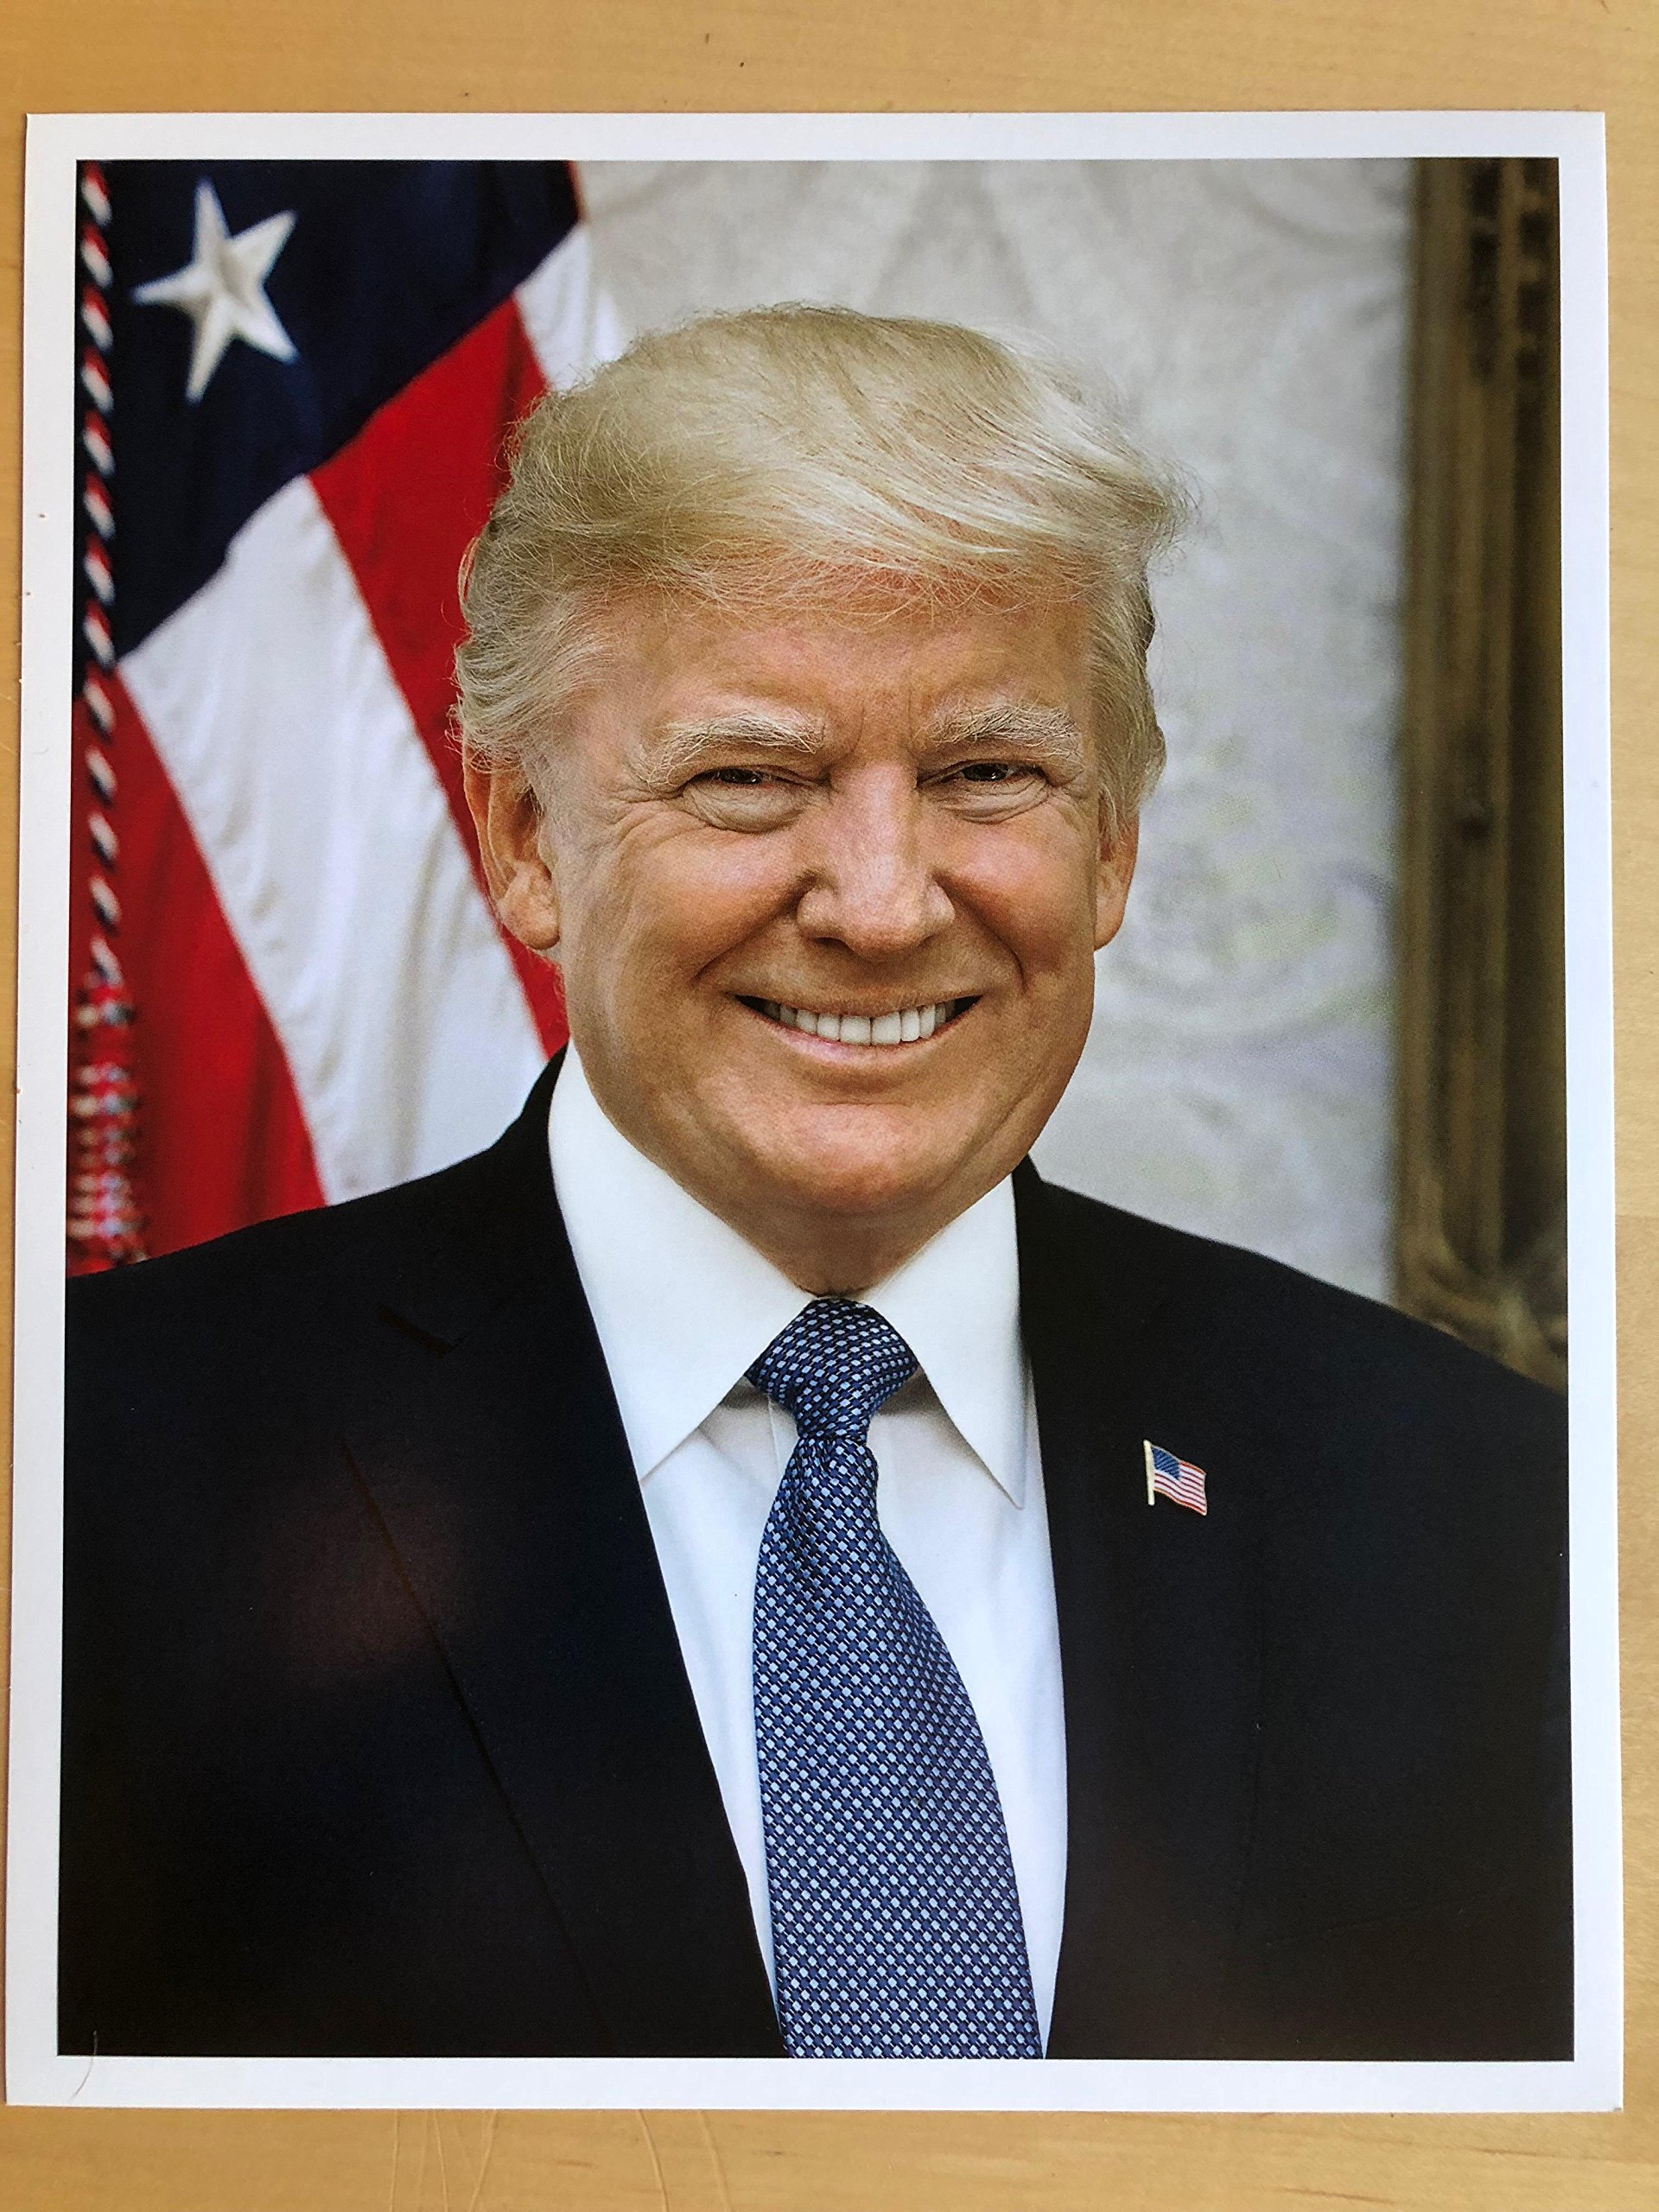 Official Presidential Portrait of Donald Trump